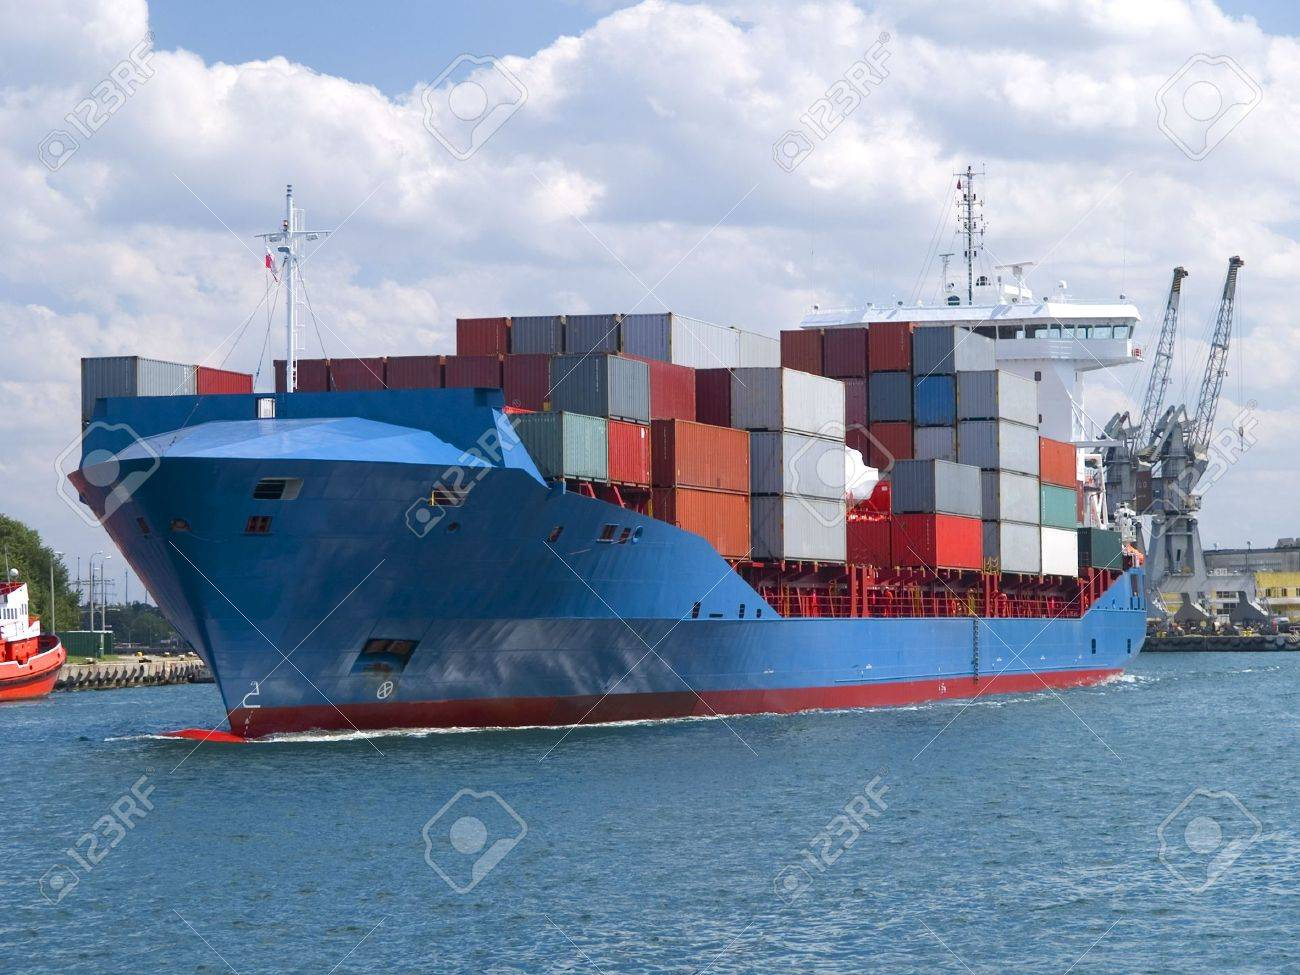 Huge container cargo ship heading for port Stock Photo - 7836883